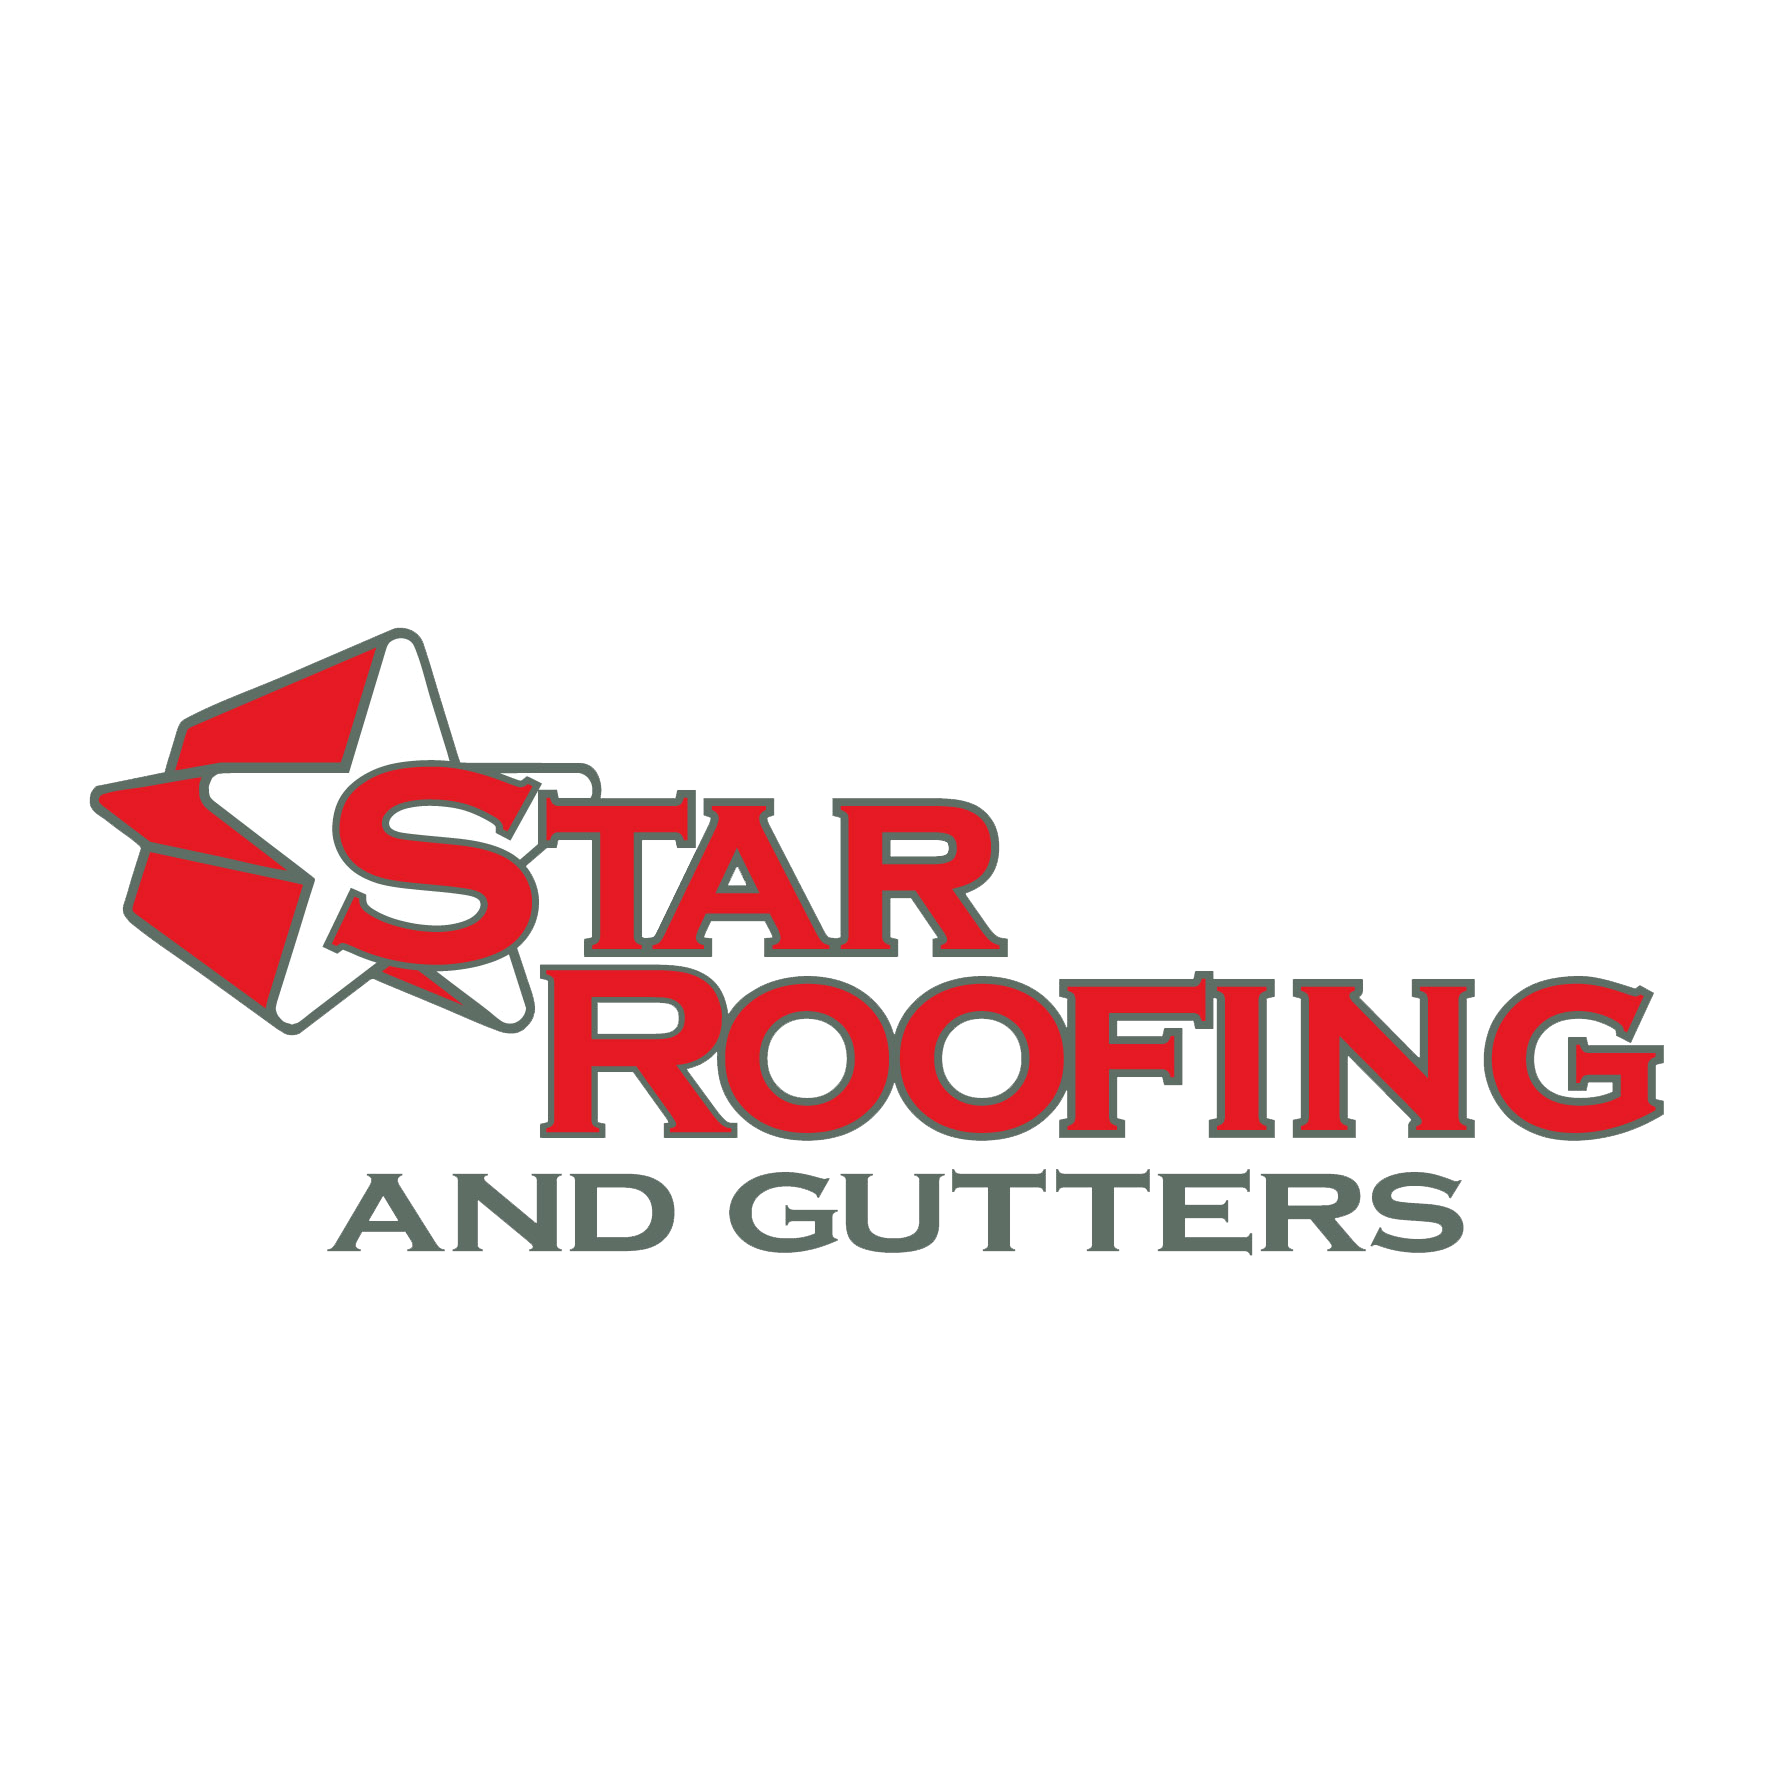 Star Roofing & Construction, Inc image 3